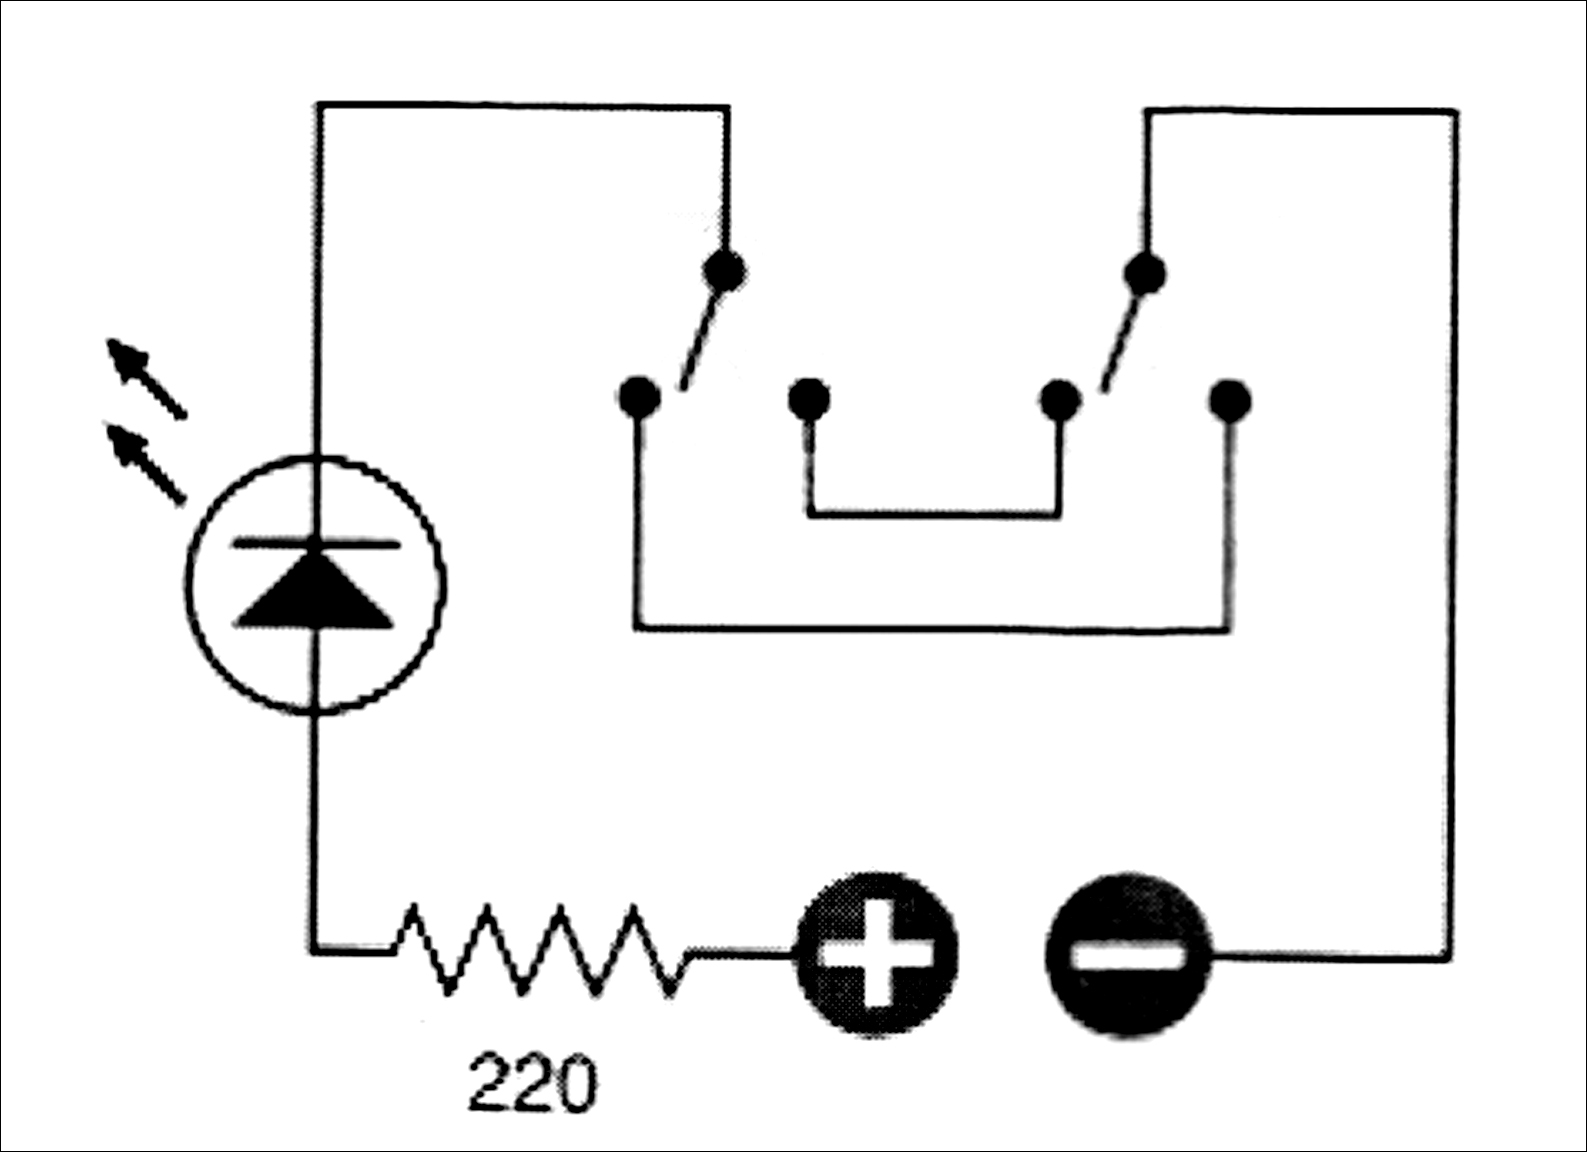 Double Pole Single Throw Light Switch Wiring Diagram Car Air Horn A Get Free Image About